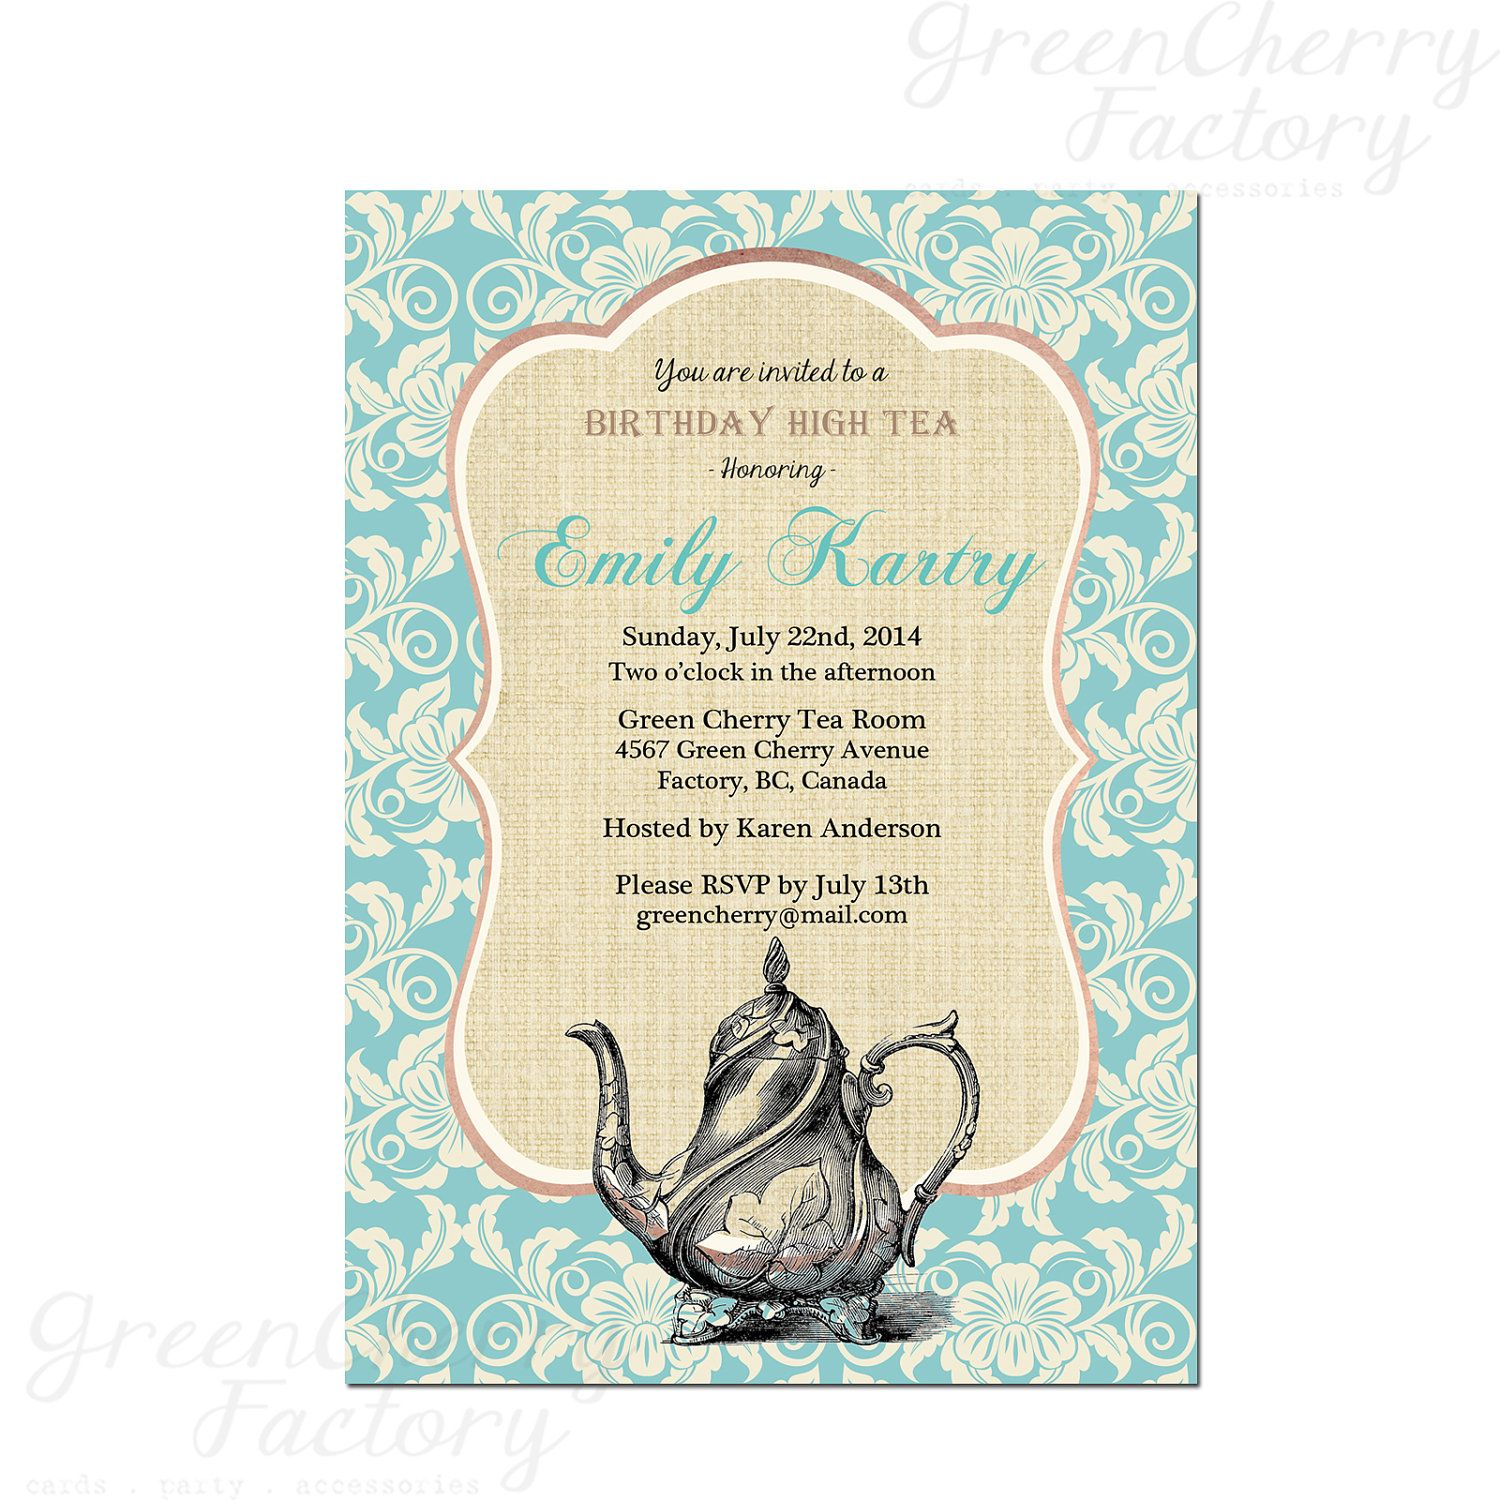 Teal floral tea party invitation bridal tea party birthday teal floral tea party invitation bridal tea party birthday high tea invitation baby monicamarmolfo Image collections